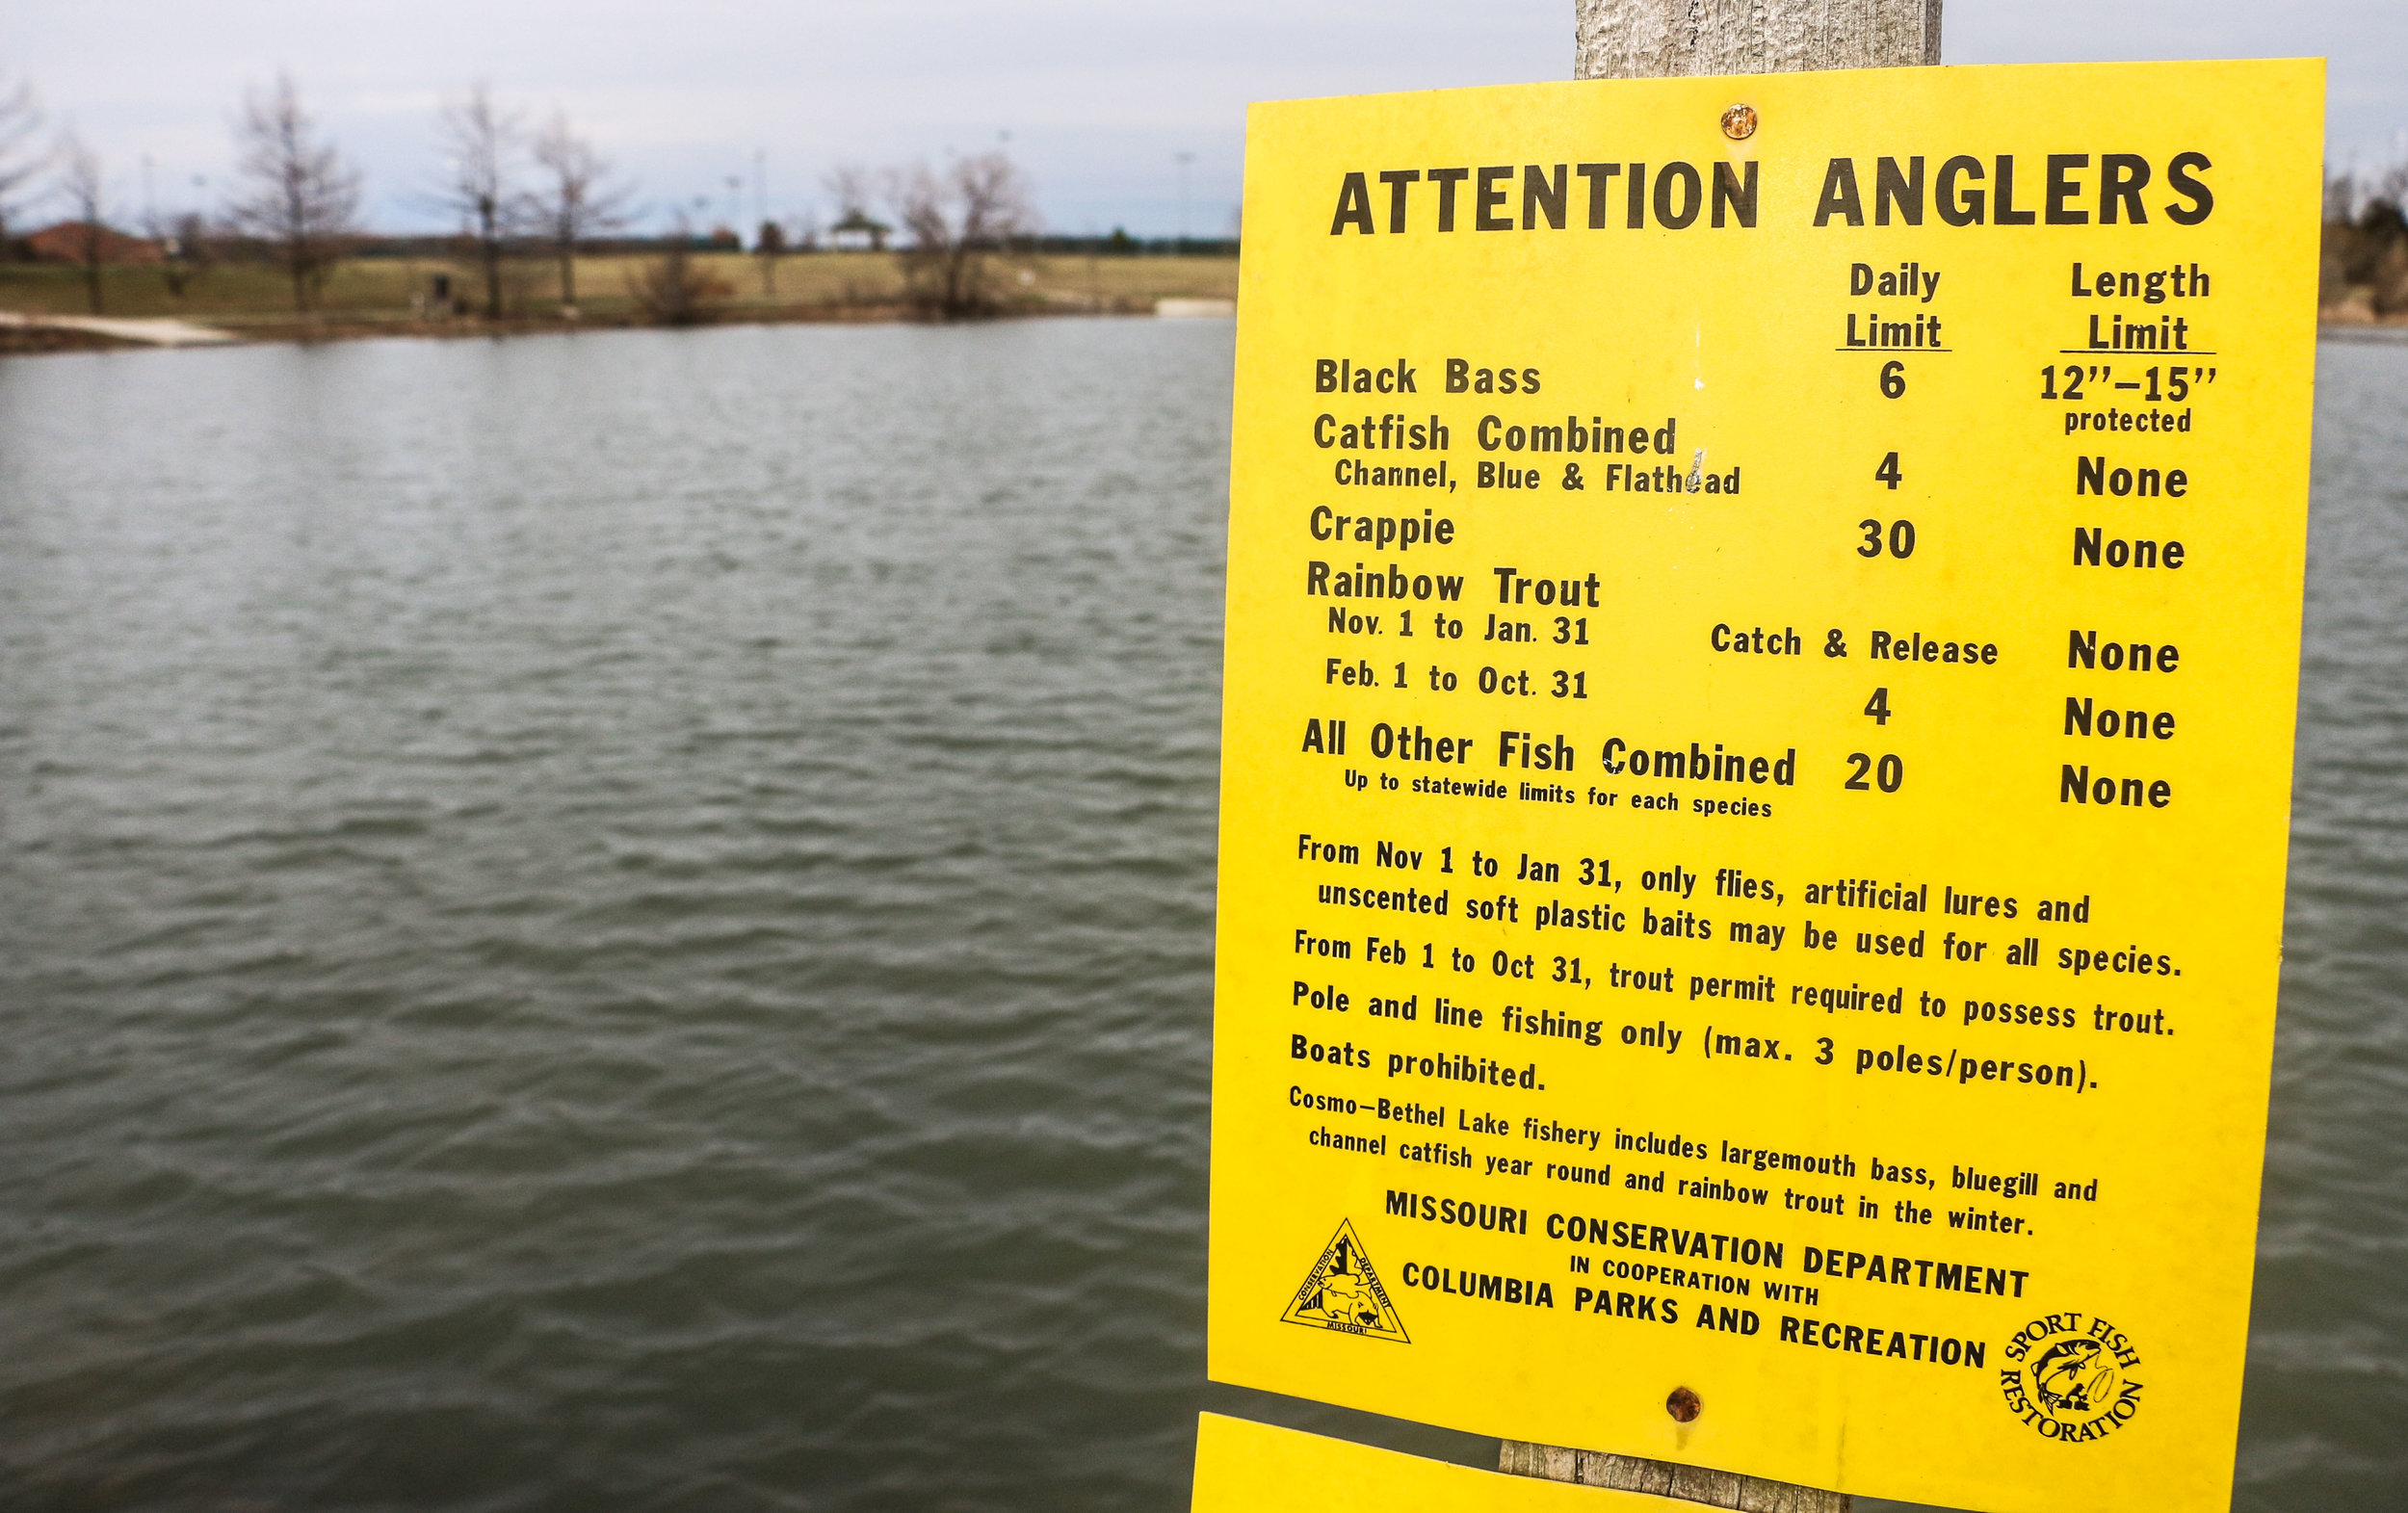 The Missouri Department of Conservation reminds fishermen of its regulations at Cosmo-Bethel Park in Columbia, Missouri, on Friday, March 10, 2017. From November to January each year, fishing is restricted to catch and release only.